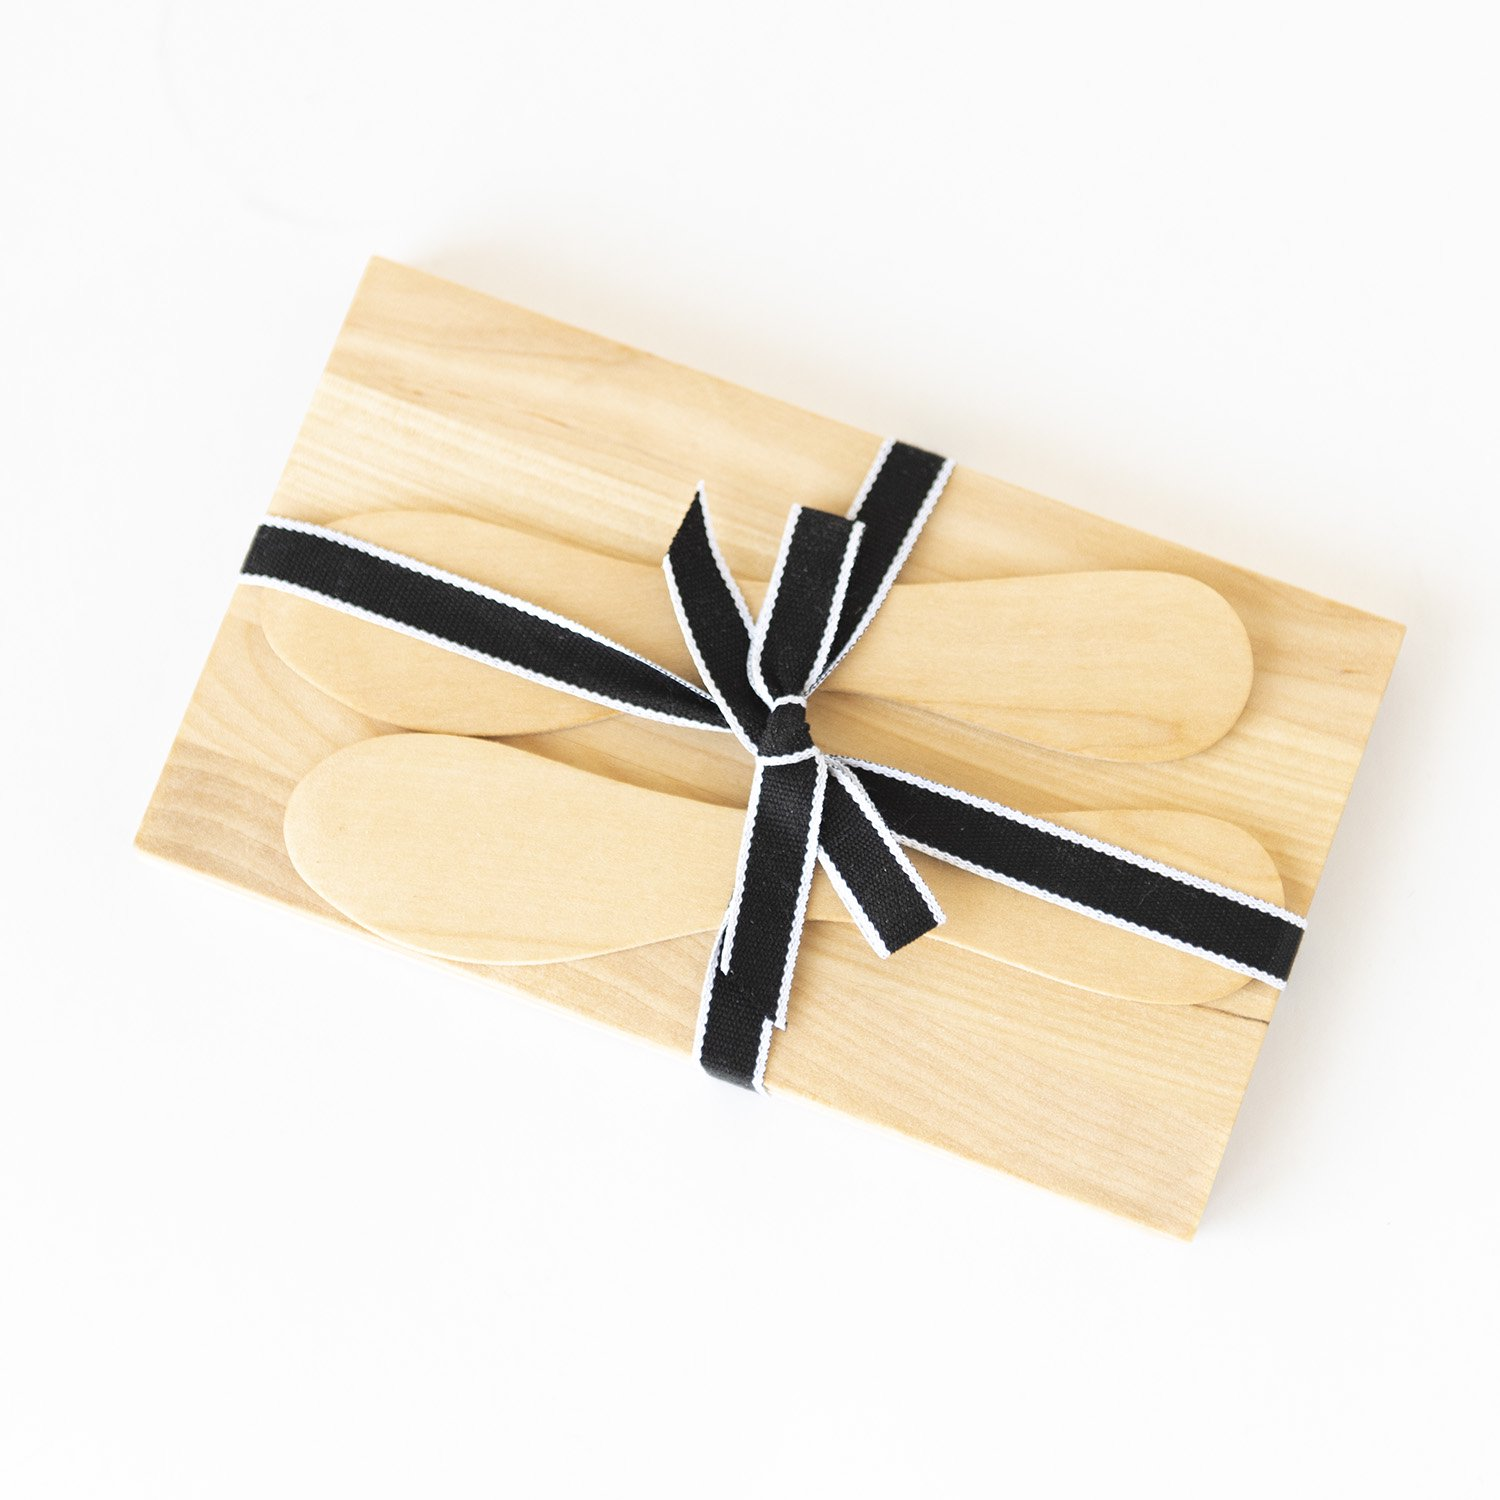 <img class='new_mark_img1' src='https://img.shop-pro.jp/img/new/icons3.gif' style='border:none;display:inline;margin:0px;padding:0px;width:auto;' />Wood Plate & Butter Knife 2個セット